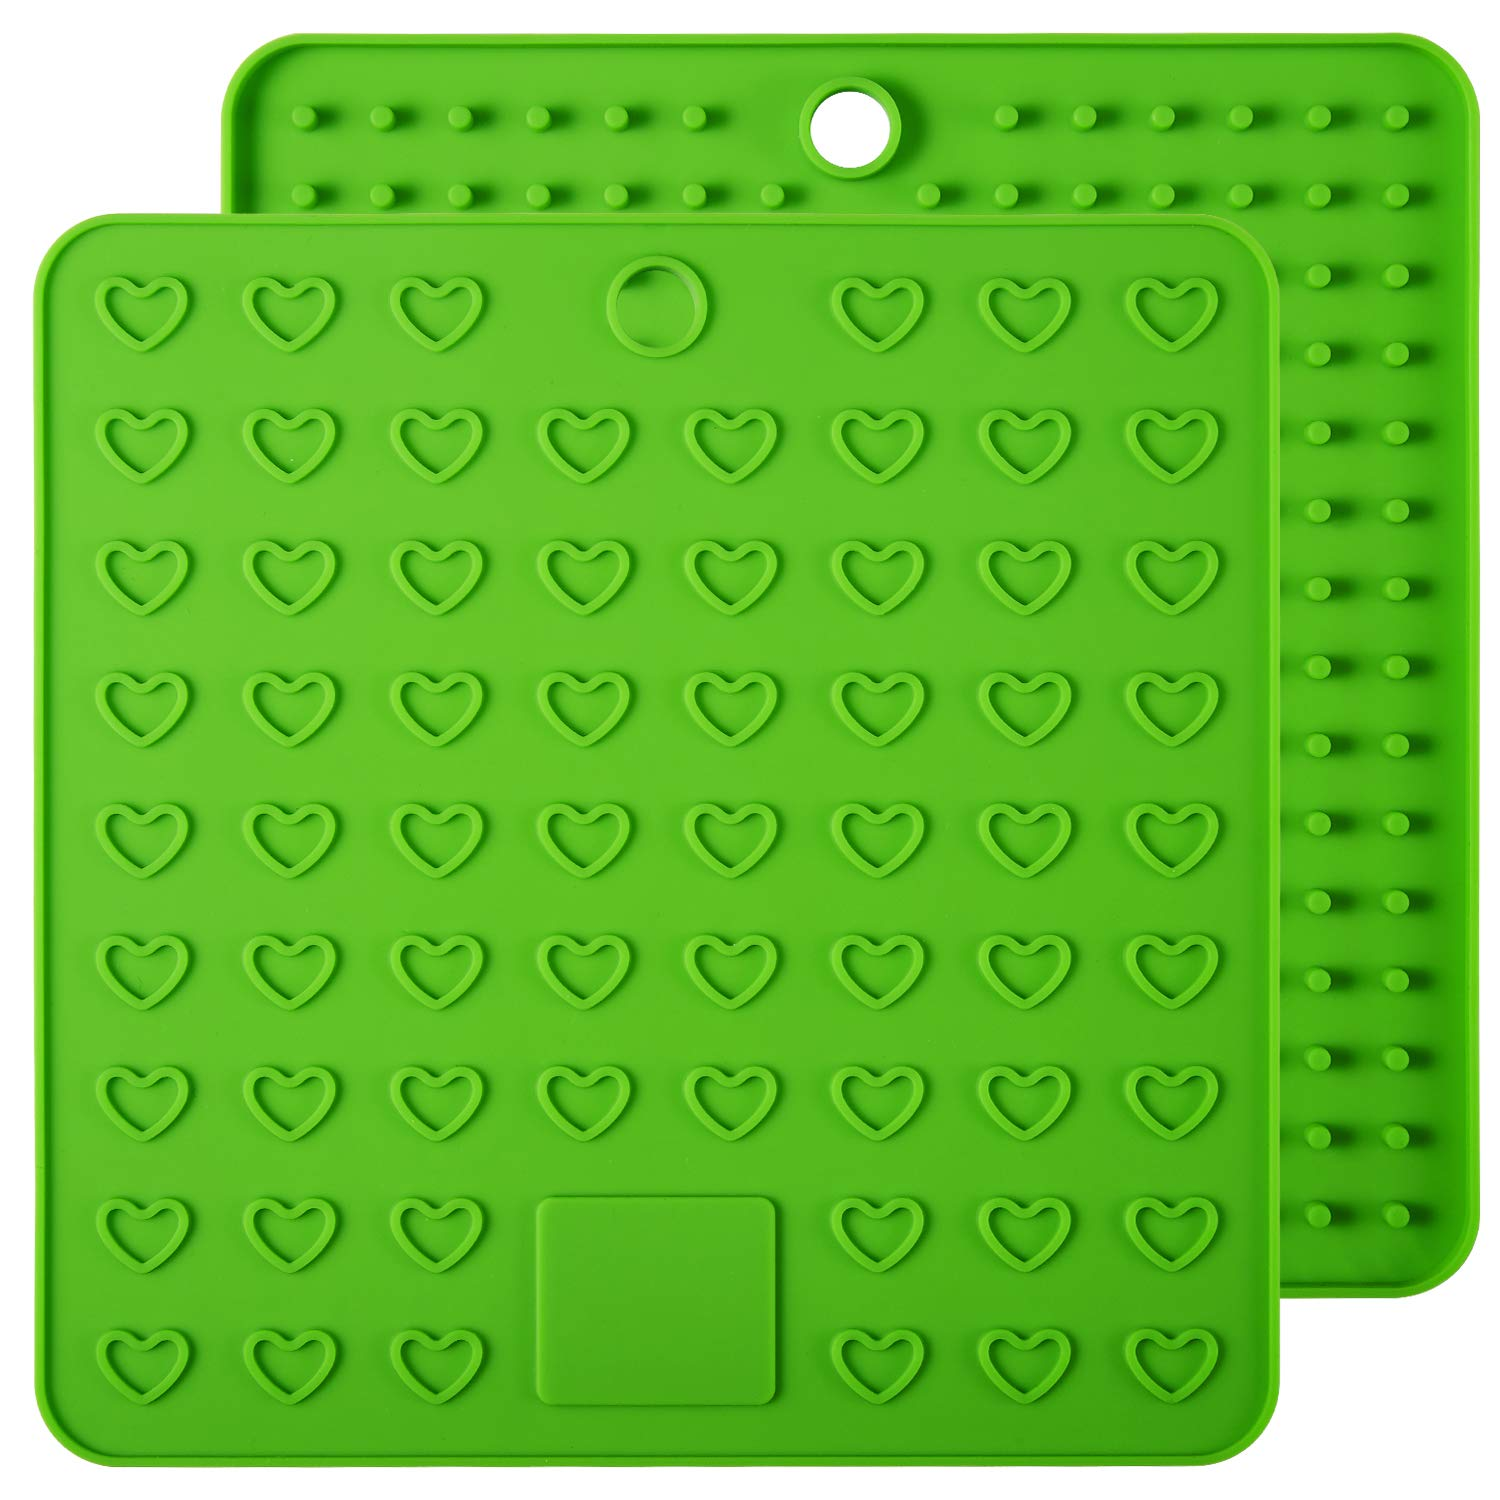 ME.FAN Silicone Pot Holder & Trivets - 2 Set Silicone Hot Pads,Potholders and Hot Mitts, Insulated, Flexible, Durable, Non Slip Spoon Rest and Large Coasters (Green)